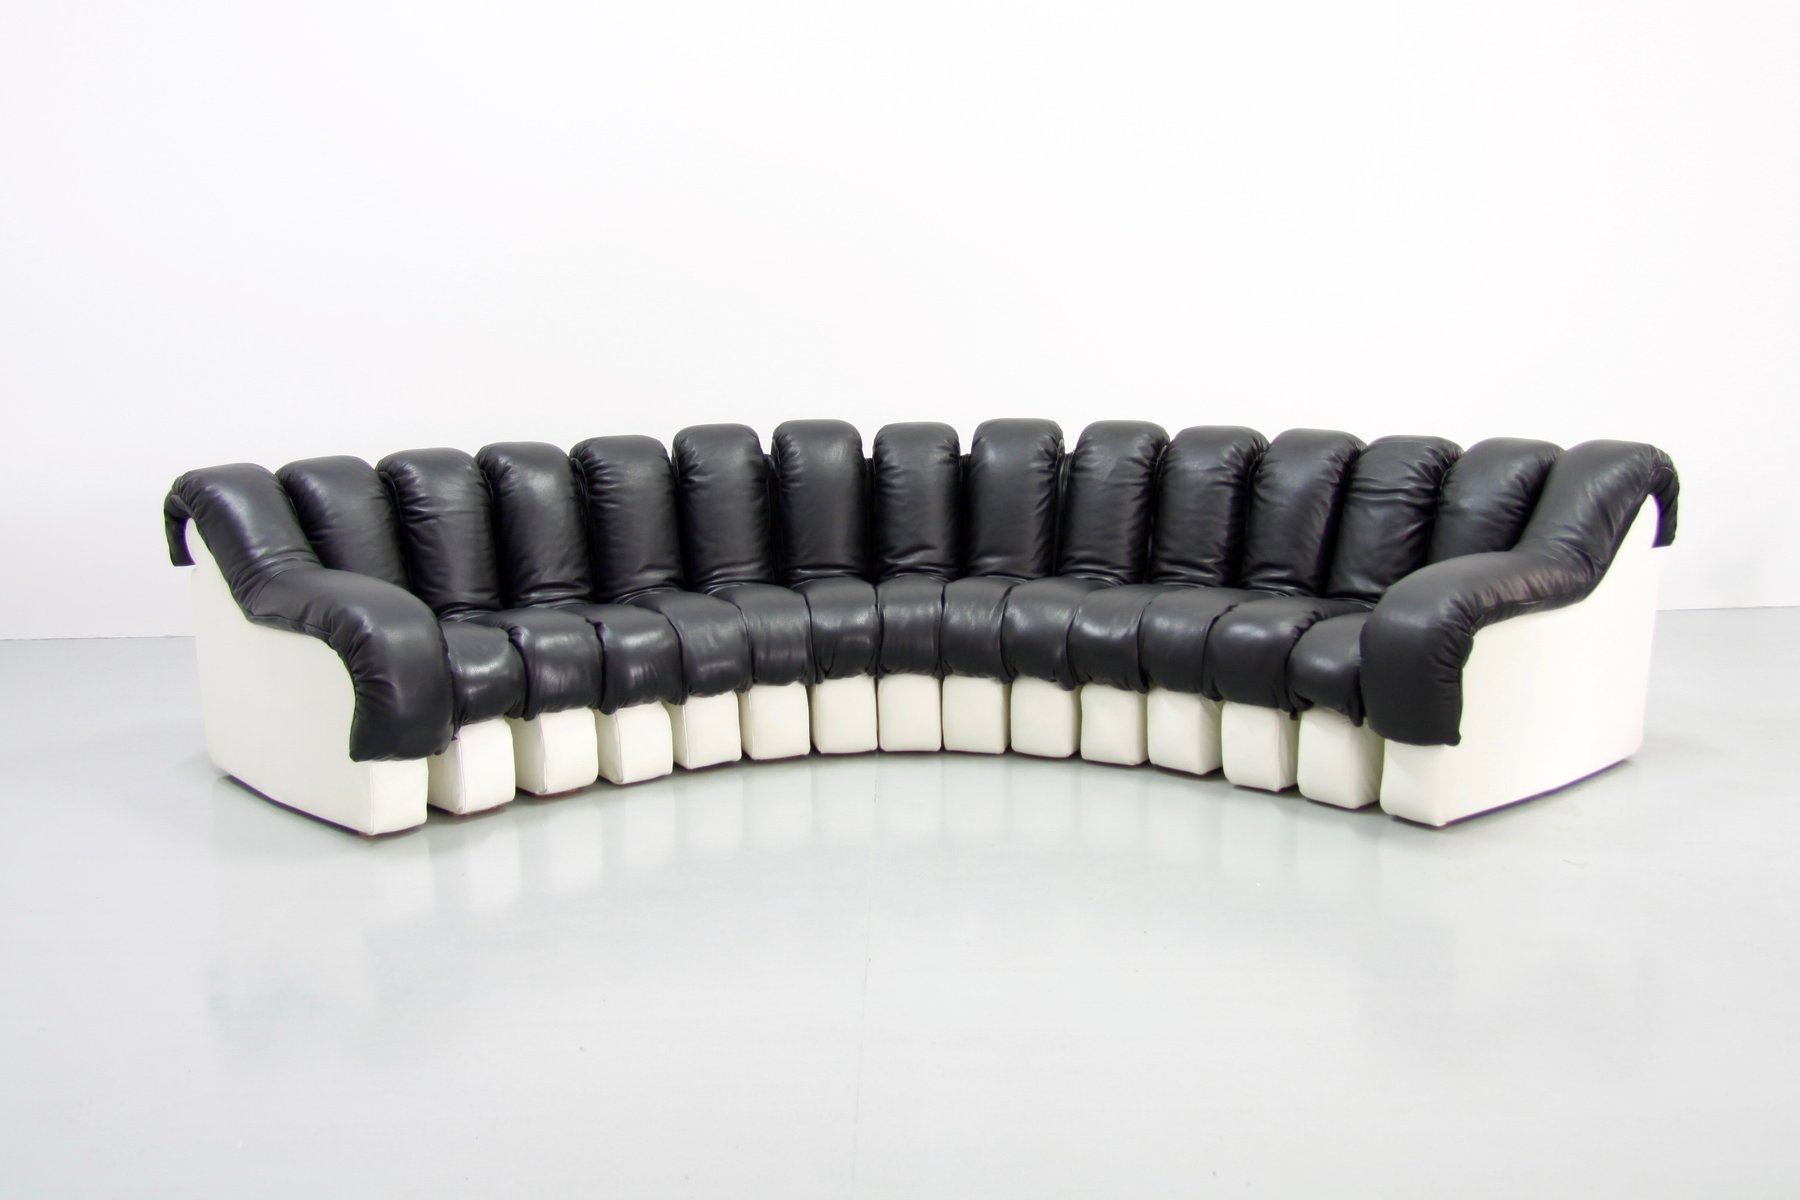 Vintage Ds600 Sofa With 15 Pieces By Berger Peduzzi Riva Ulrich And Vogt For De Sede